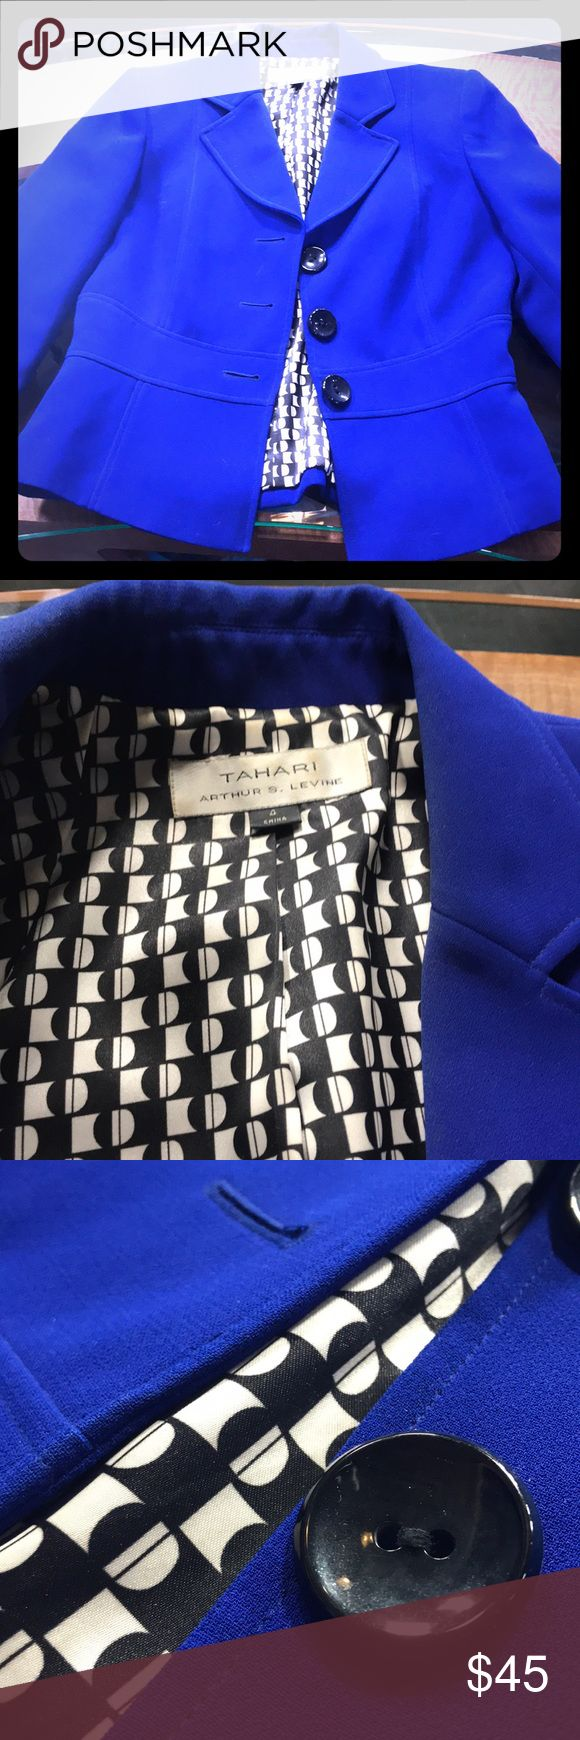 Tahari Royal blue jacket with black button detail Royal blue classic suit jacket perfectly paired with pants or skirt. Regular, loose fitting. Size 4, great shape. Fully lined, 100% polyester Tahari Jackets & Coats Blazers